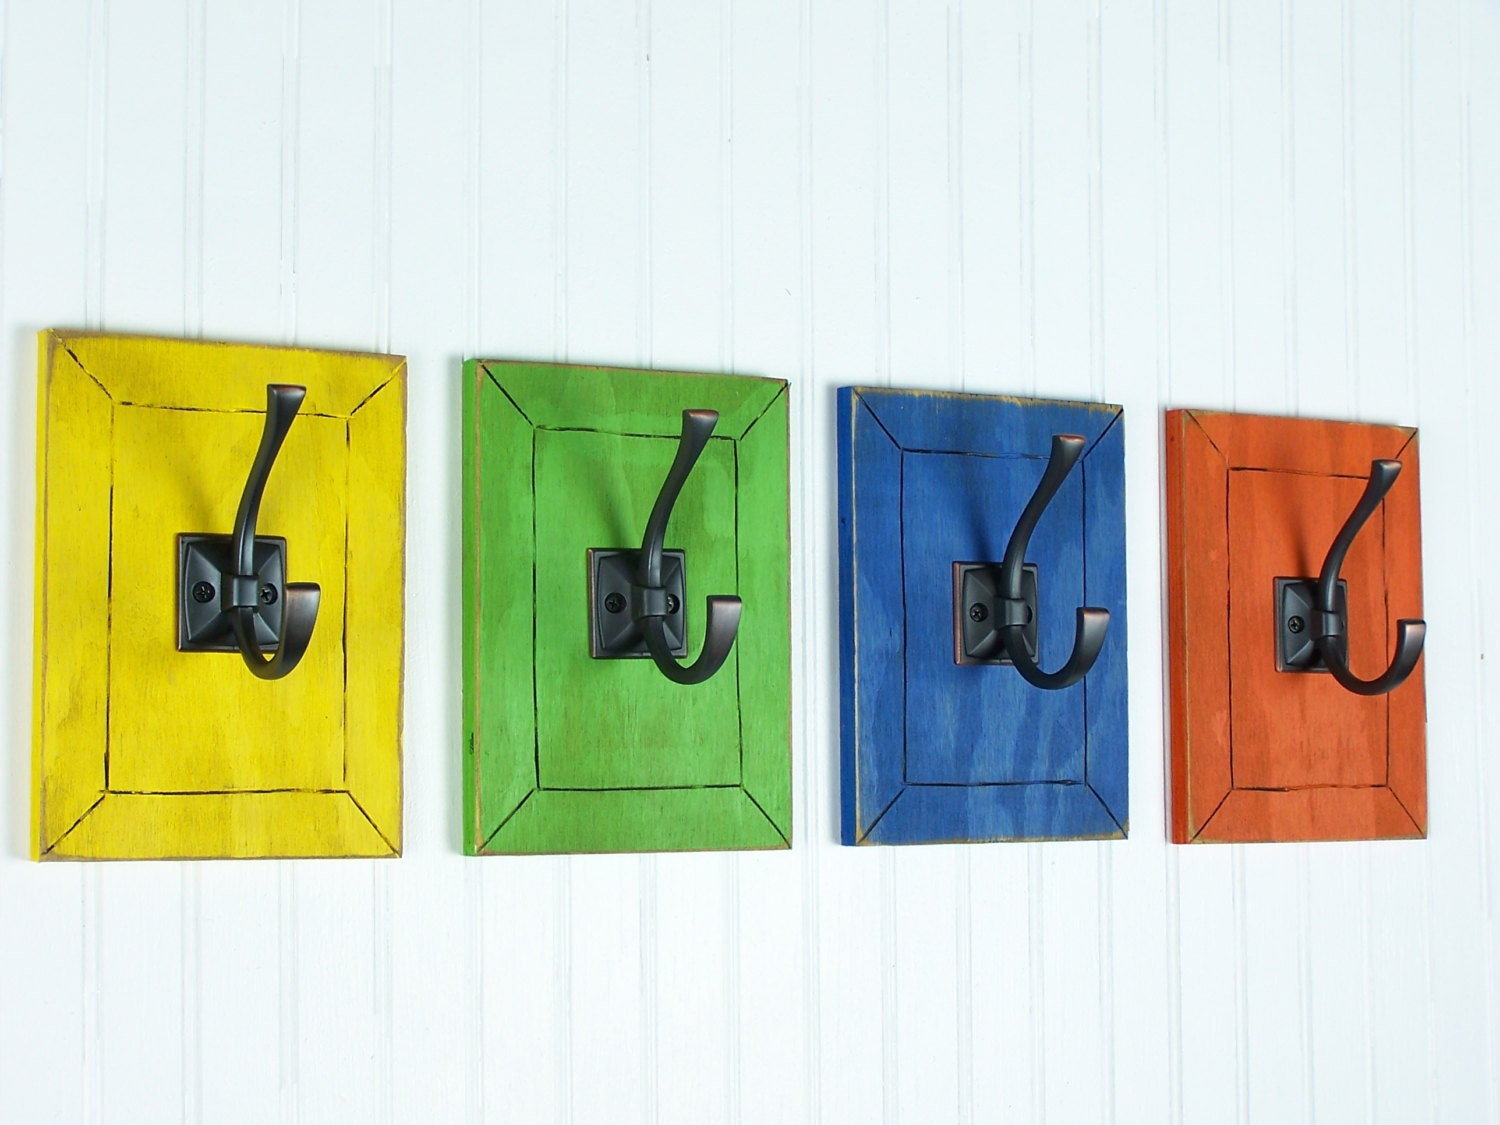 Colorful wall art decorative wall hooks rainbow decor kids - Kids decorative wall hooks ...